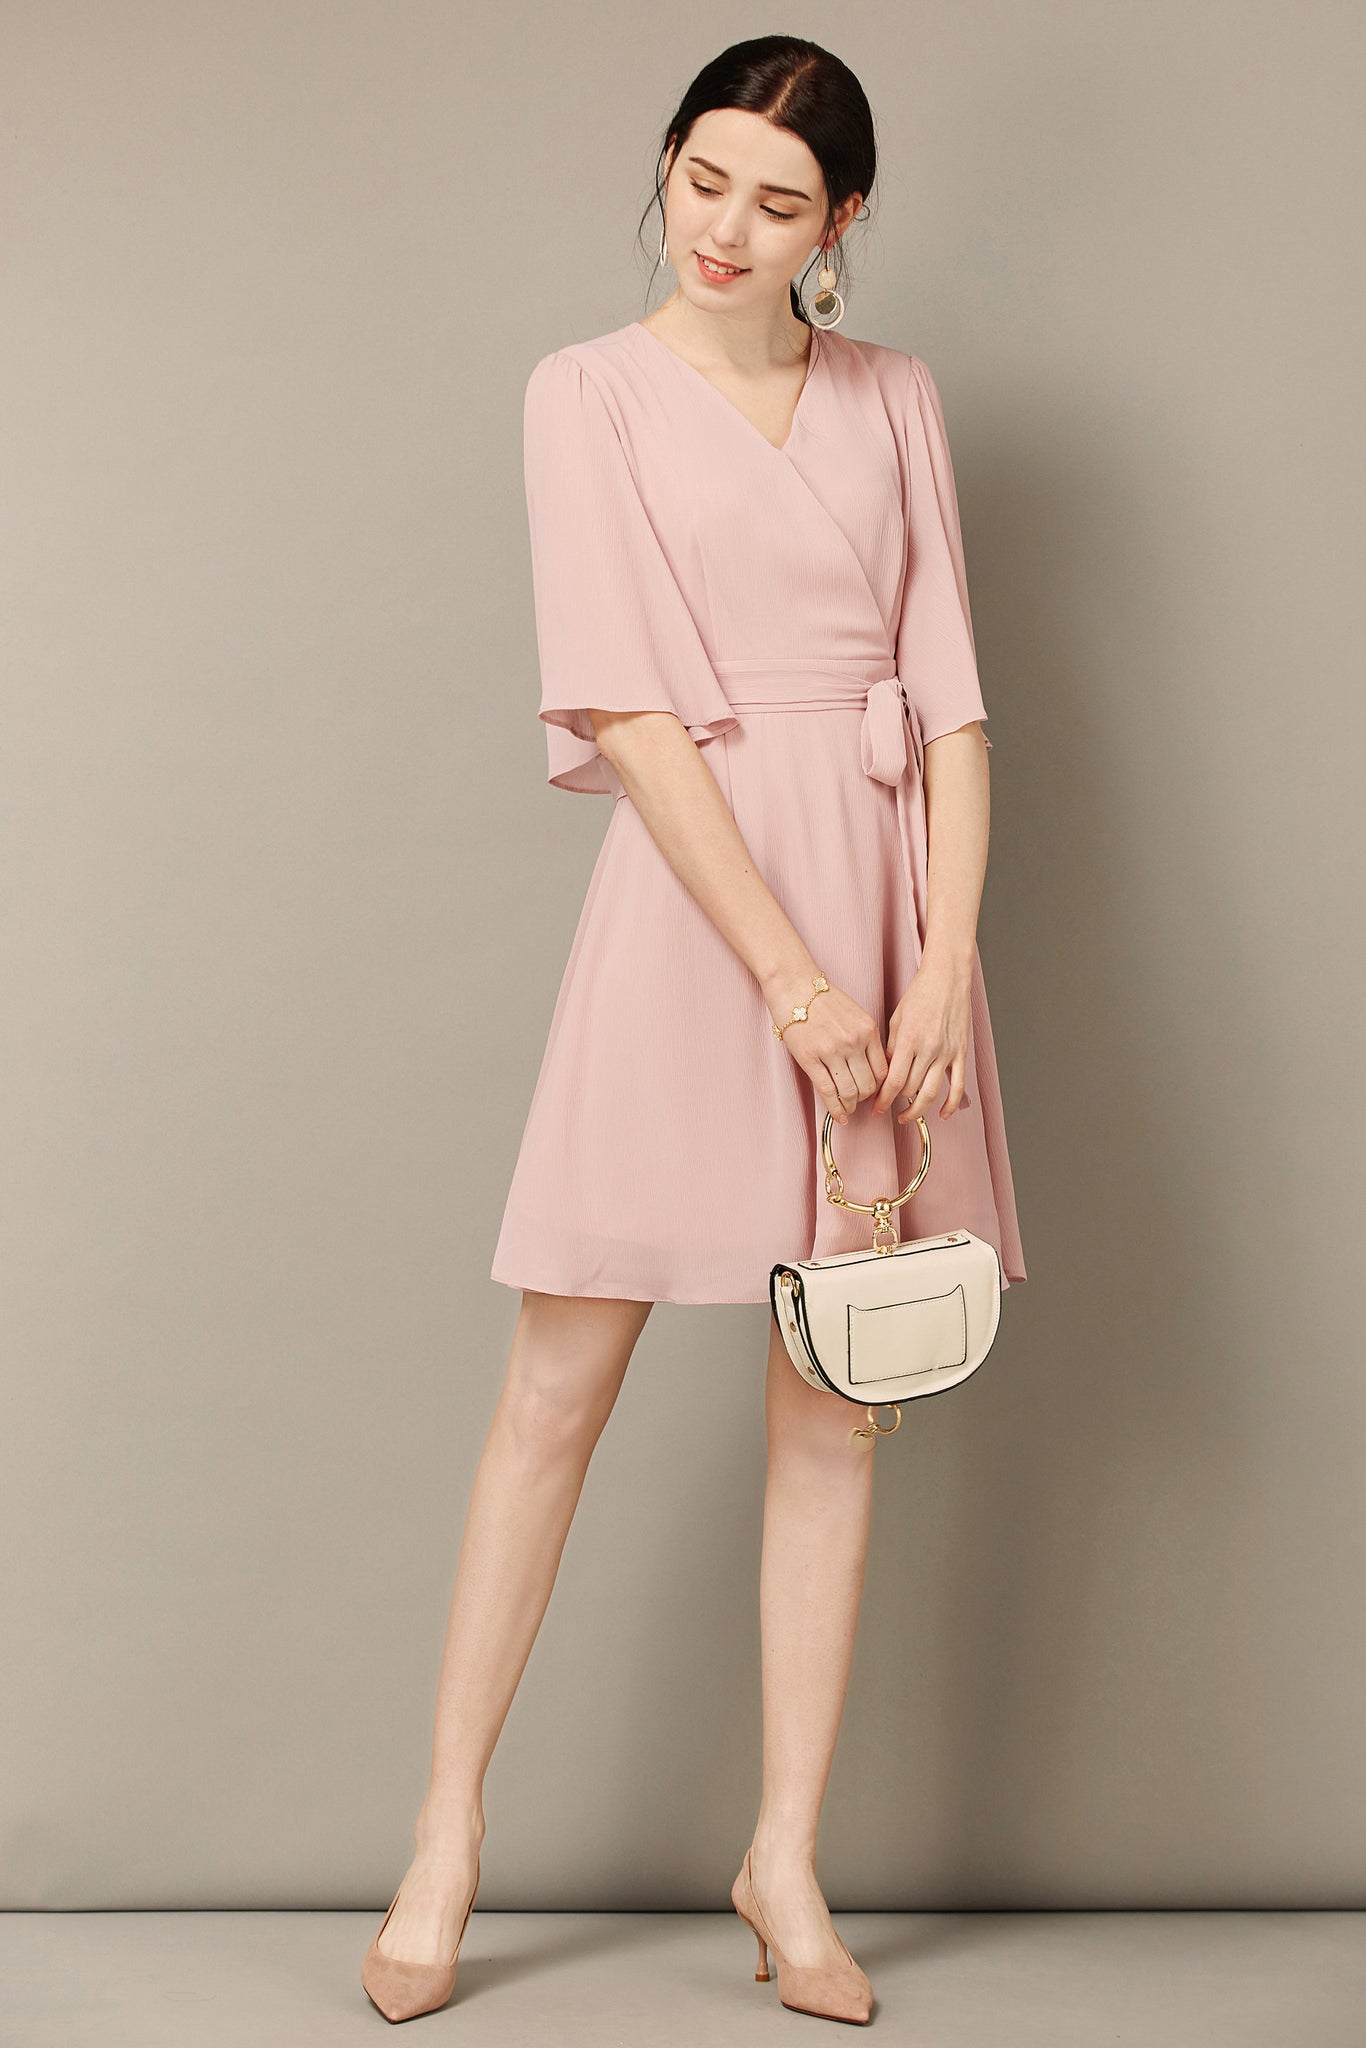 Blush Pink Flowy Dress